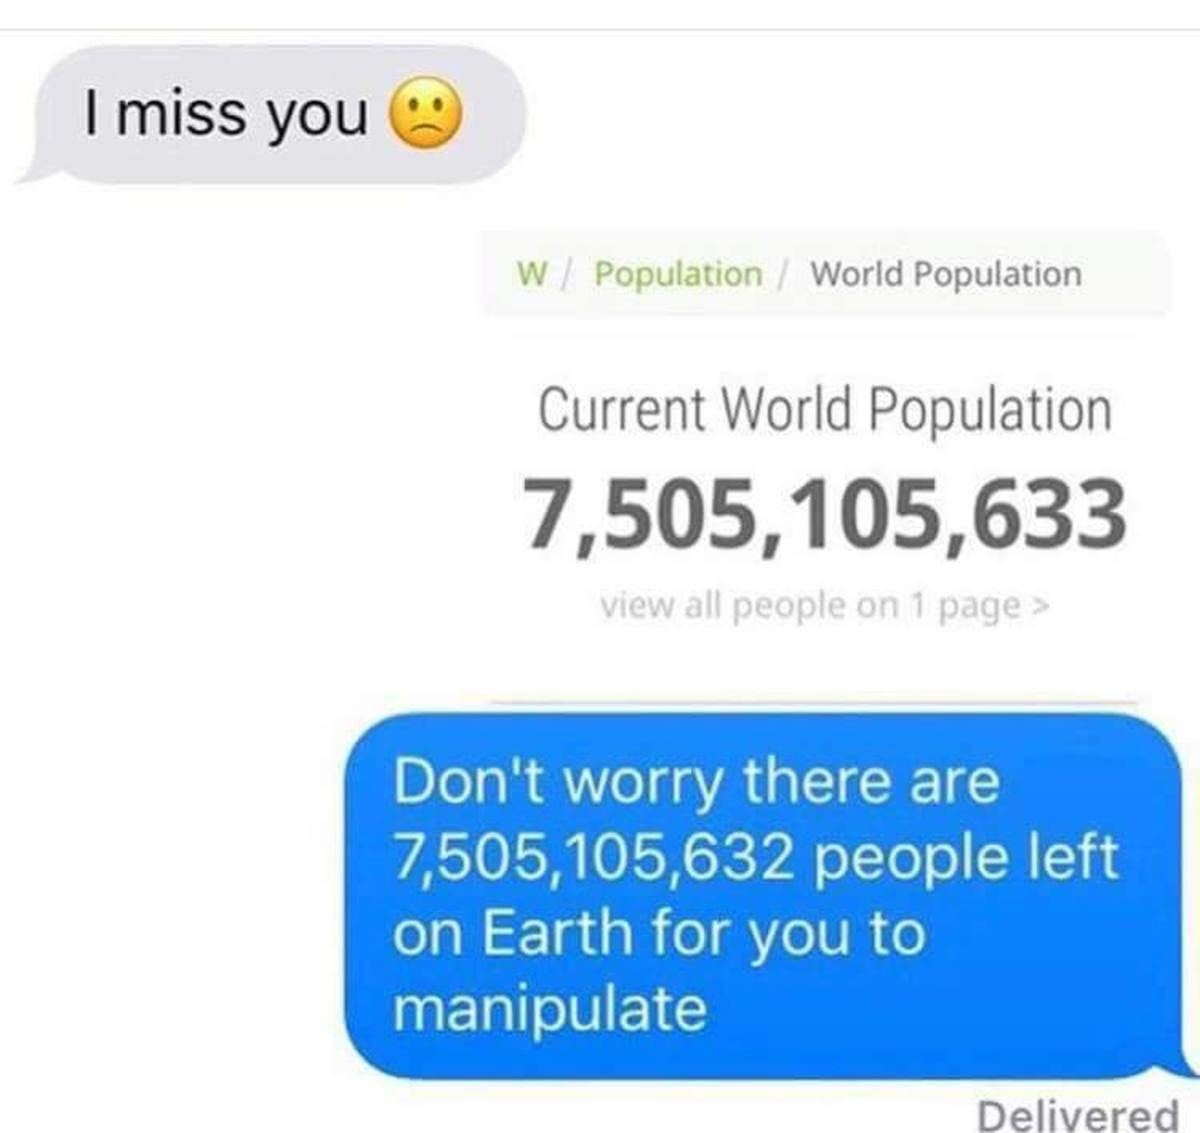 Current World Population. . I miss you (ii) IN Population World Population Current World Population for you to manipulate